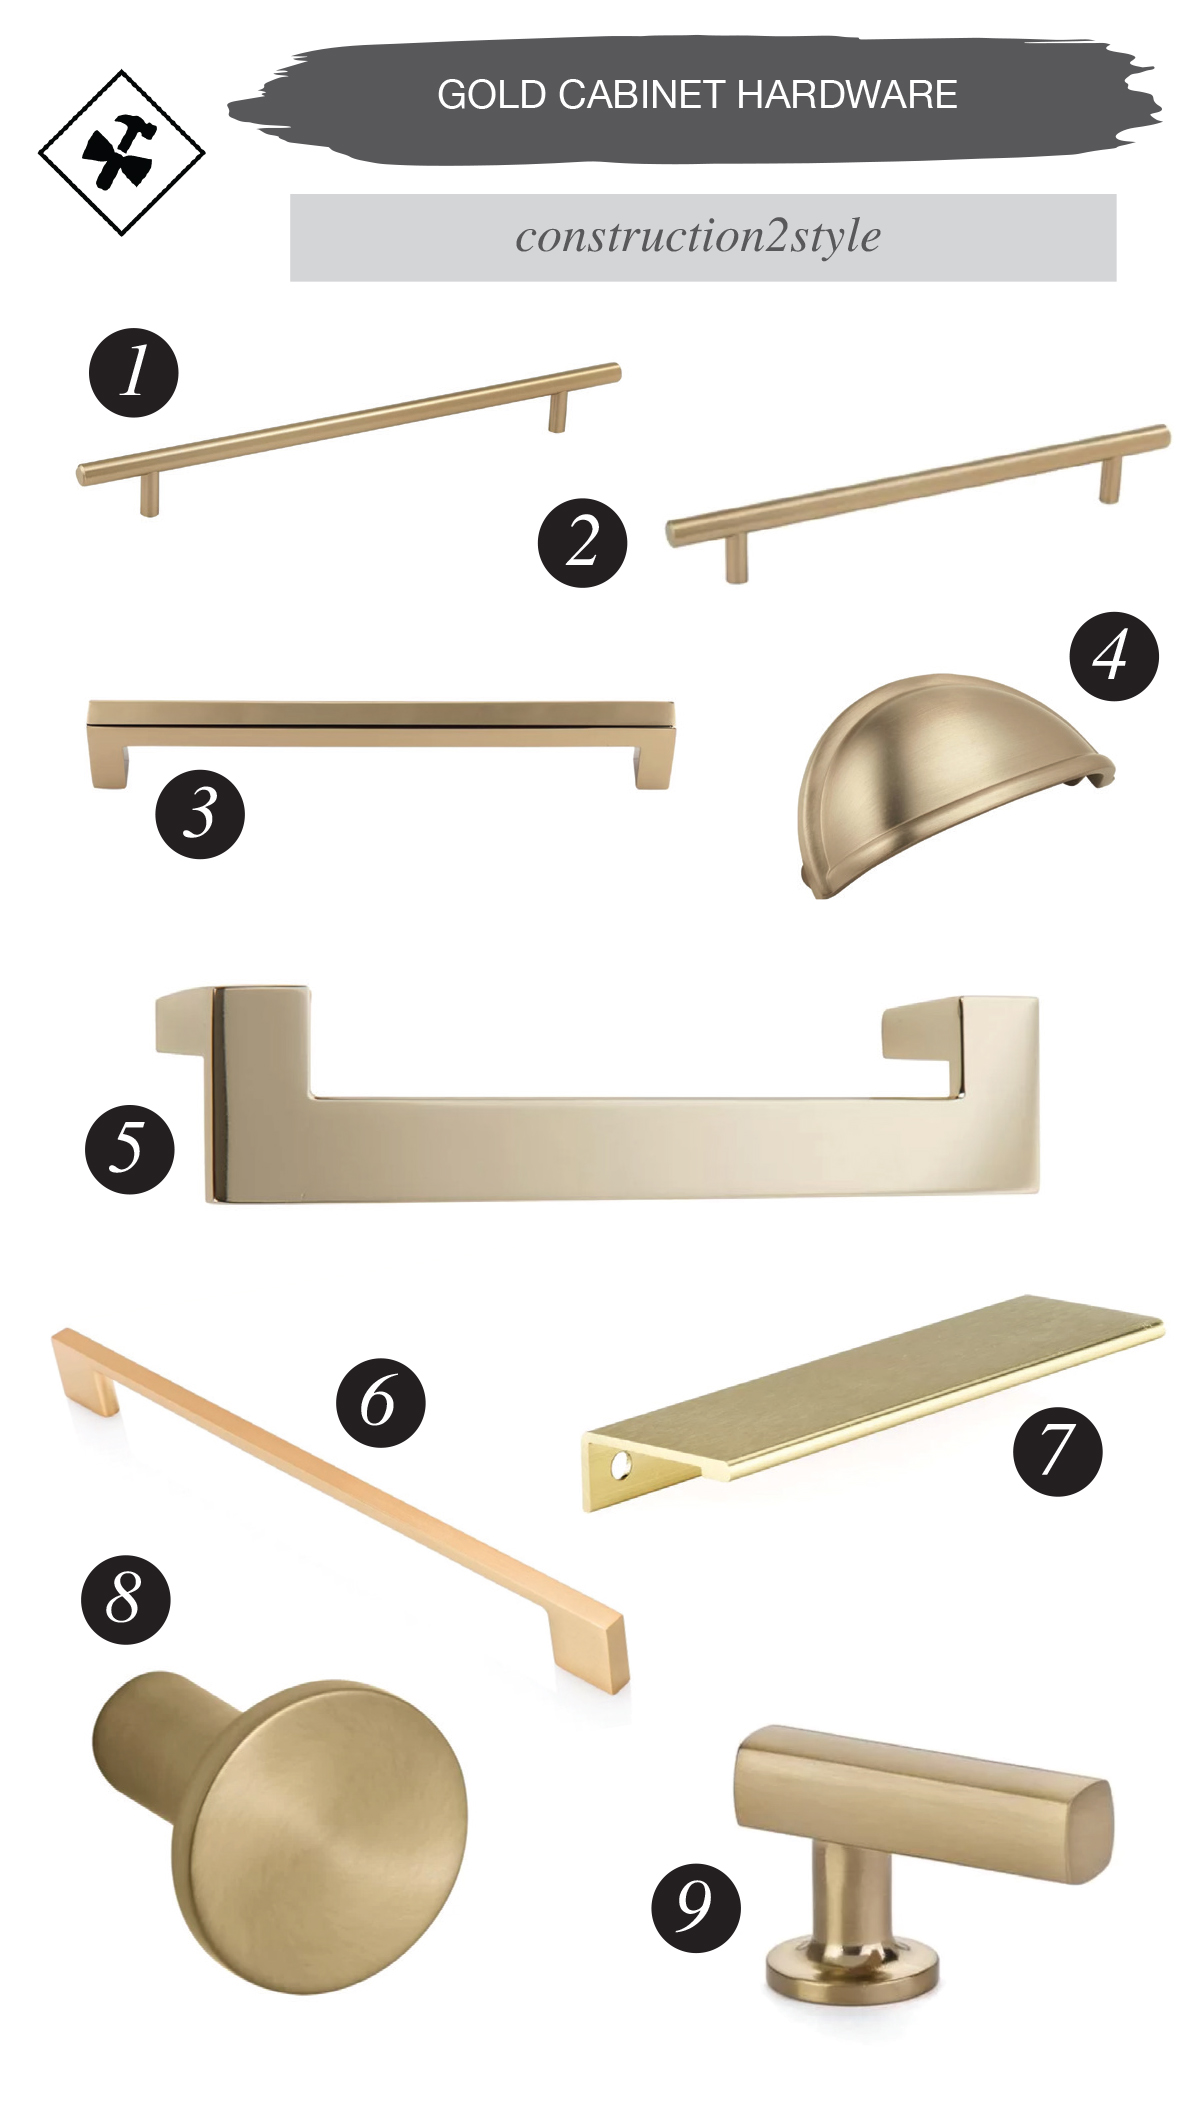 gold cabinet hardware   construction2style